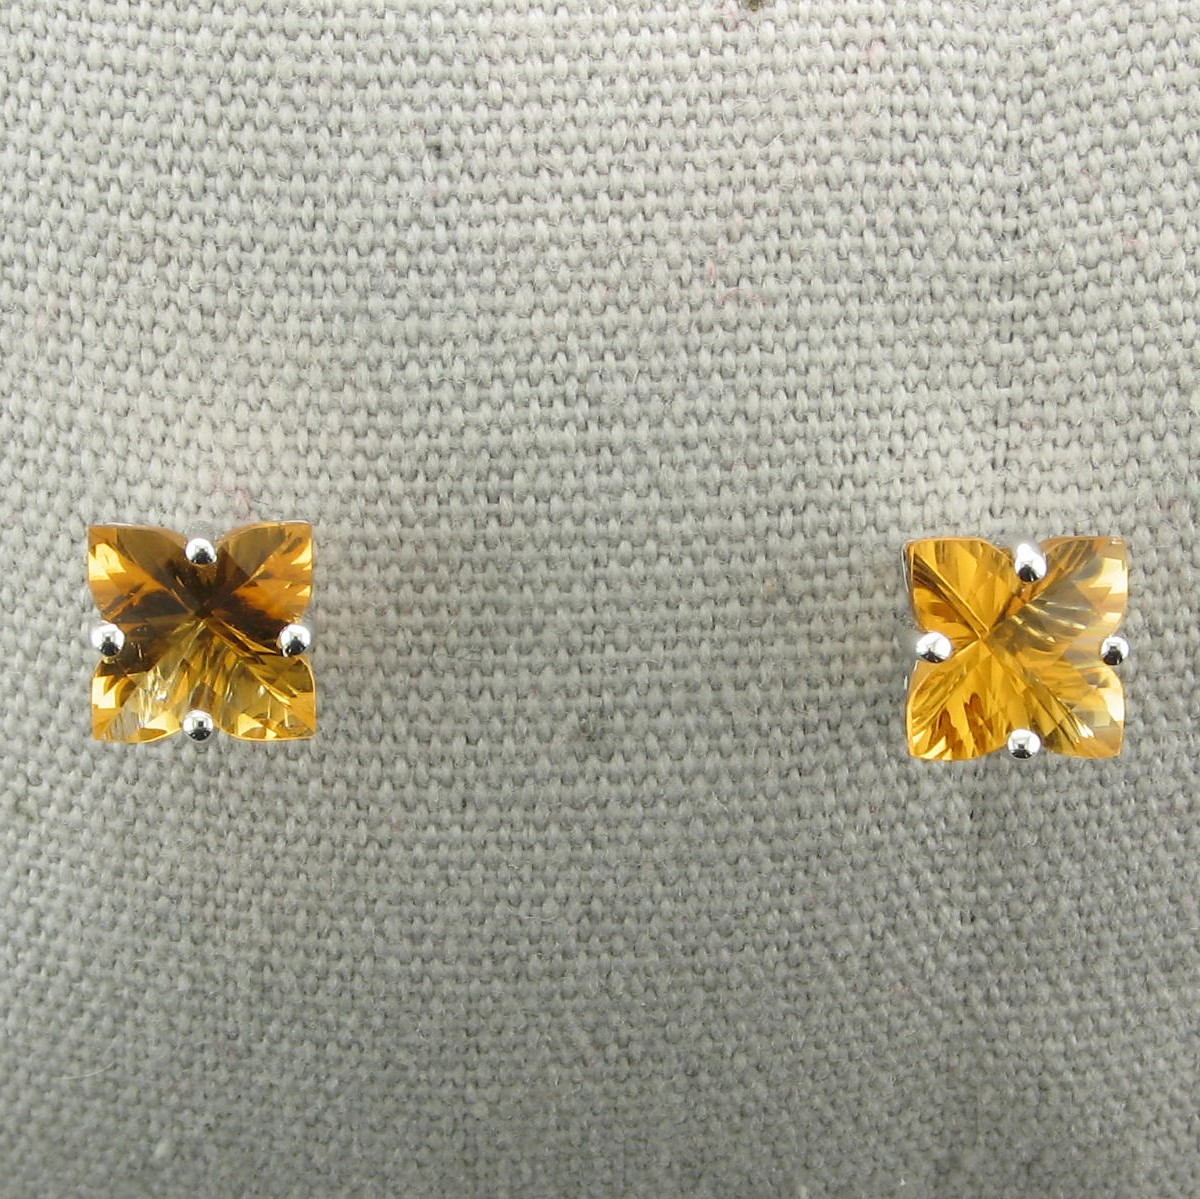 2.64ct Lily Cut Citrine Earrings set in 14k White Gold